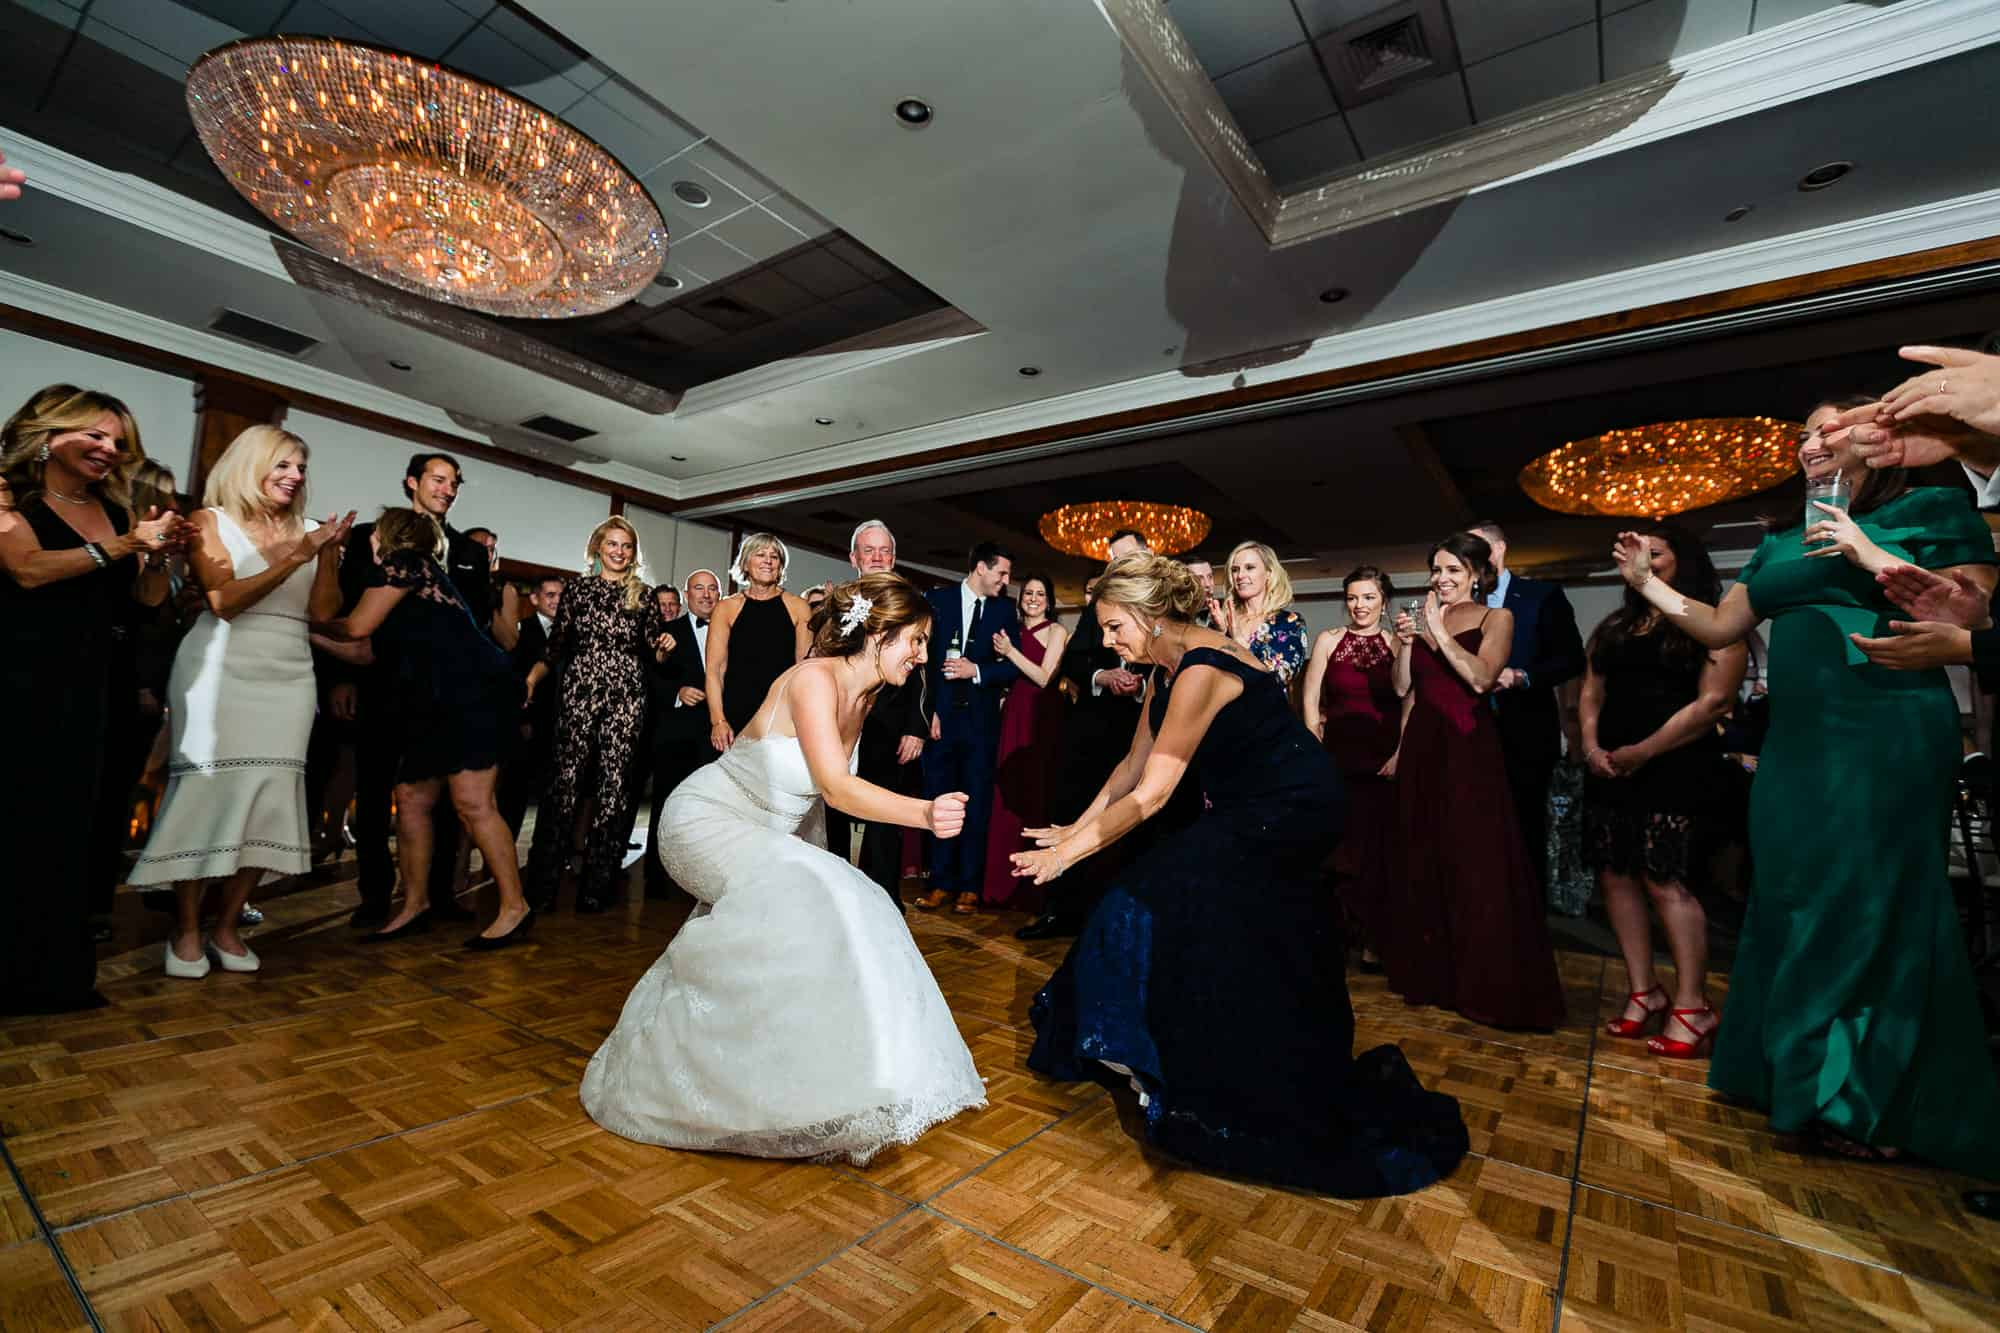 Bride and her mother dancing during wedding reception